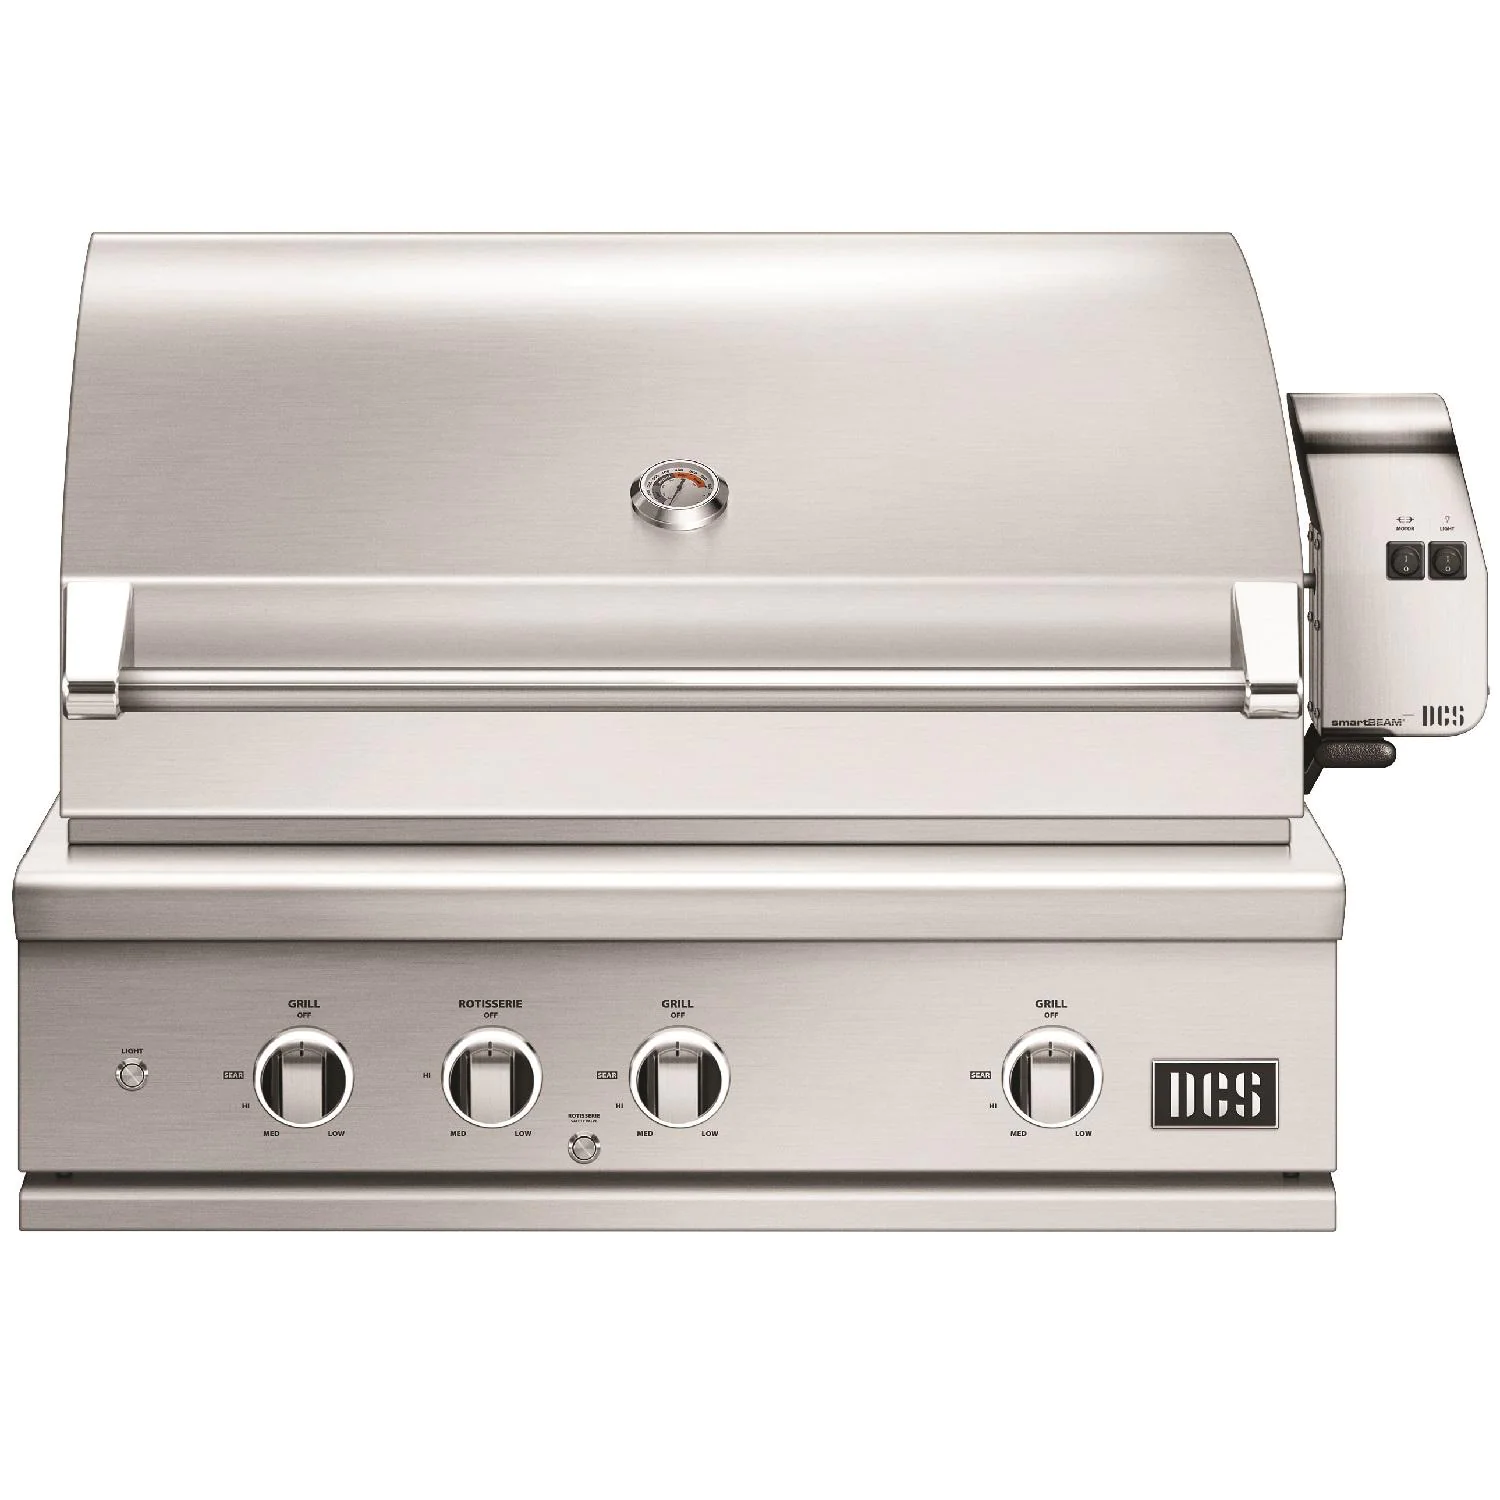 """DCS Series 9 Evolution 36"""" Built-In Natural Gas Grill With Rotisserie - be1-36rc-n"""